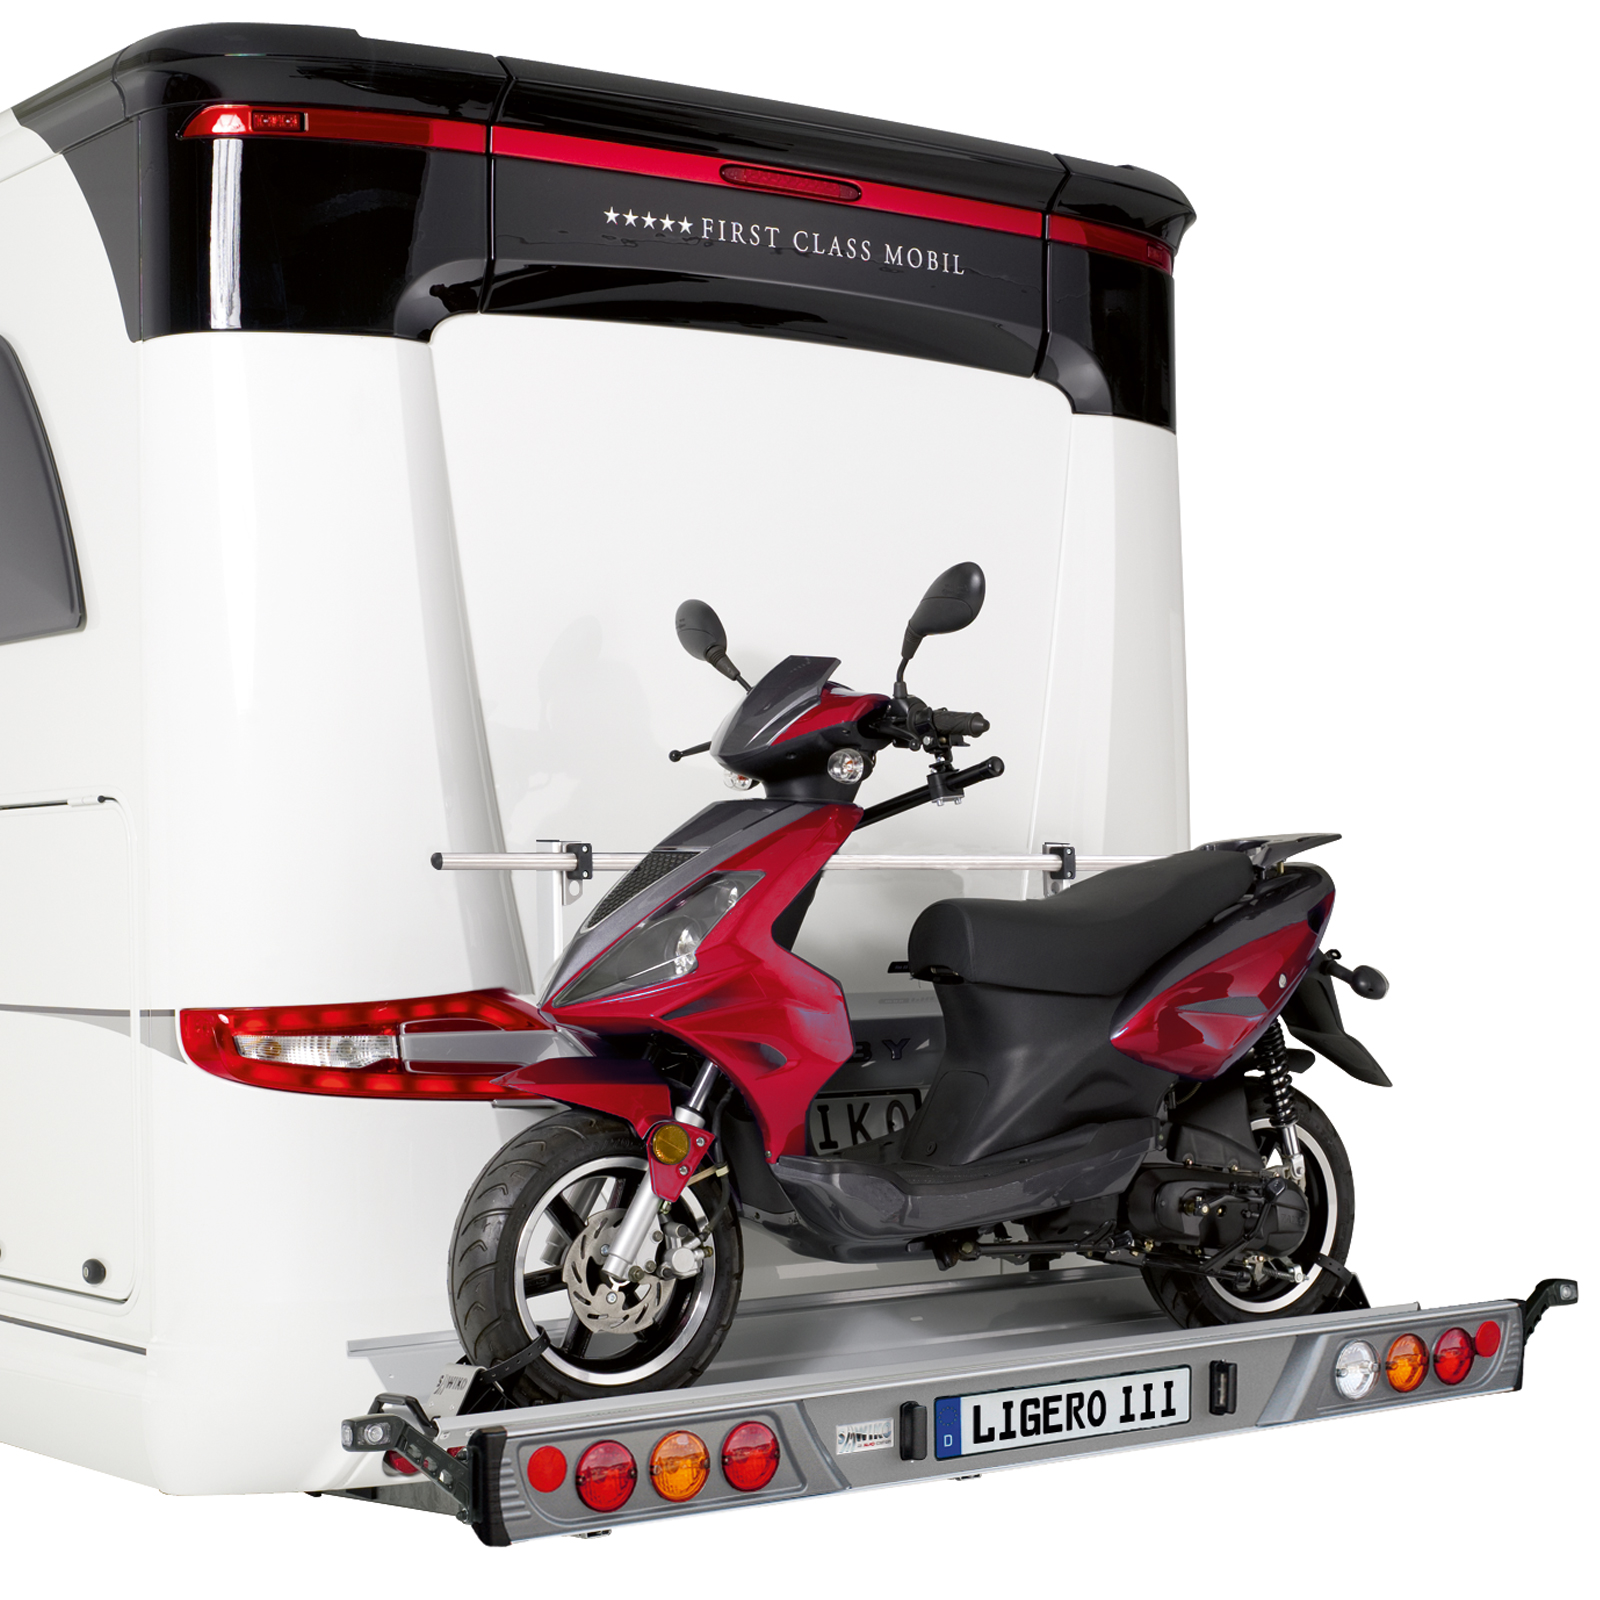 ligero iii der variable motorradtr ger f r wohnmobile. Black Bedroom Furniture Sets. Home Design Ideas